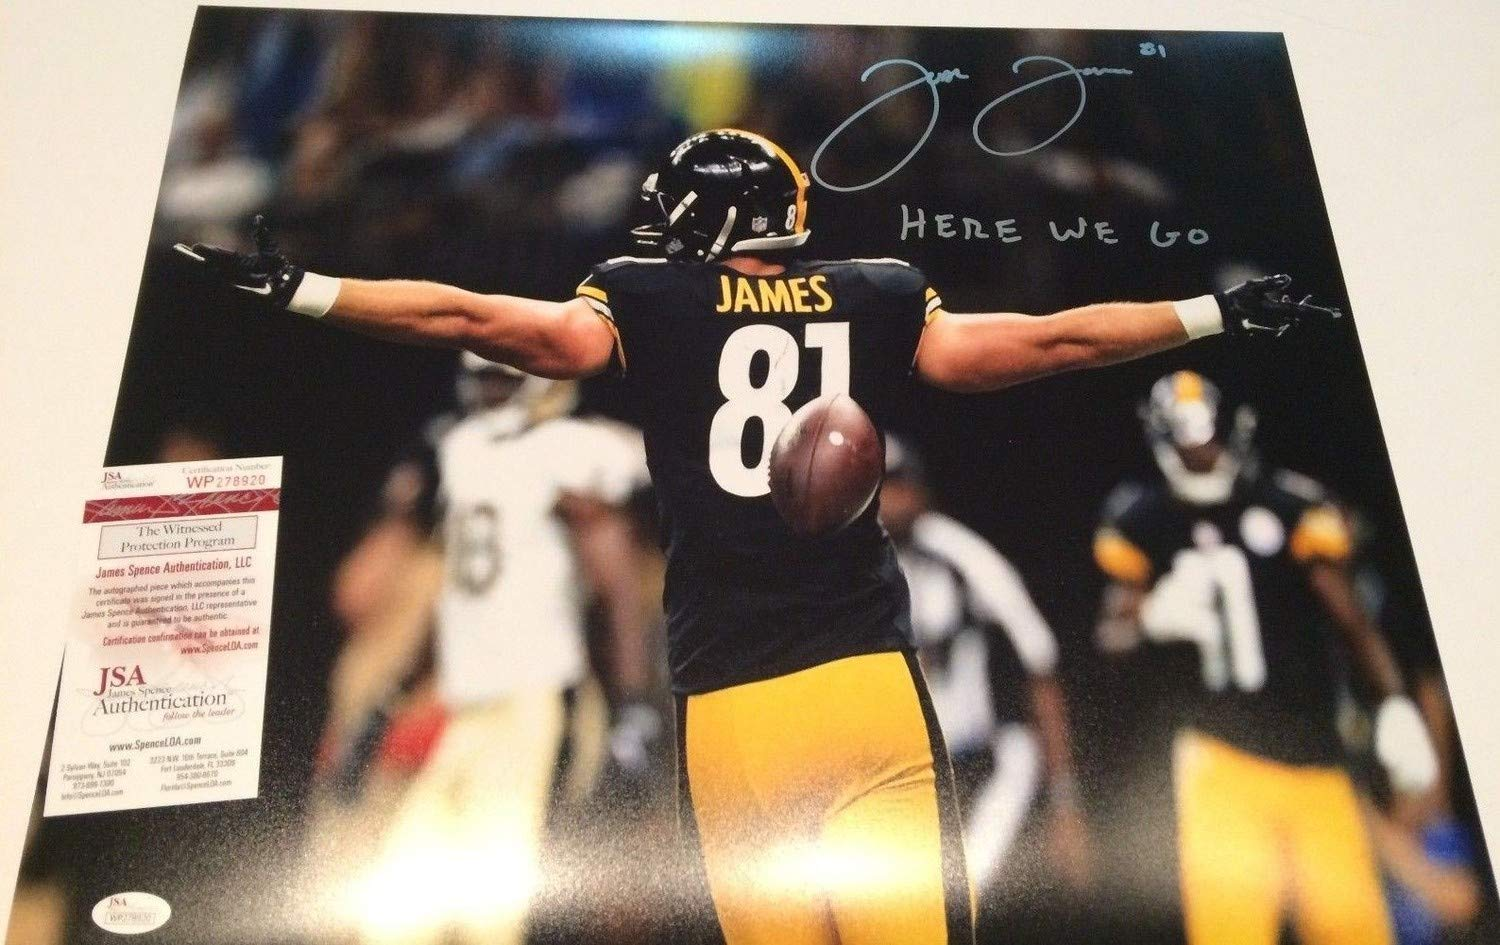 acbc582a217 Jesse James Autographed Signed Inscribed Pittsburgh Steelers 16x20 Photo -  JSA Authentic at Amazon's Sports Collectibles Store